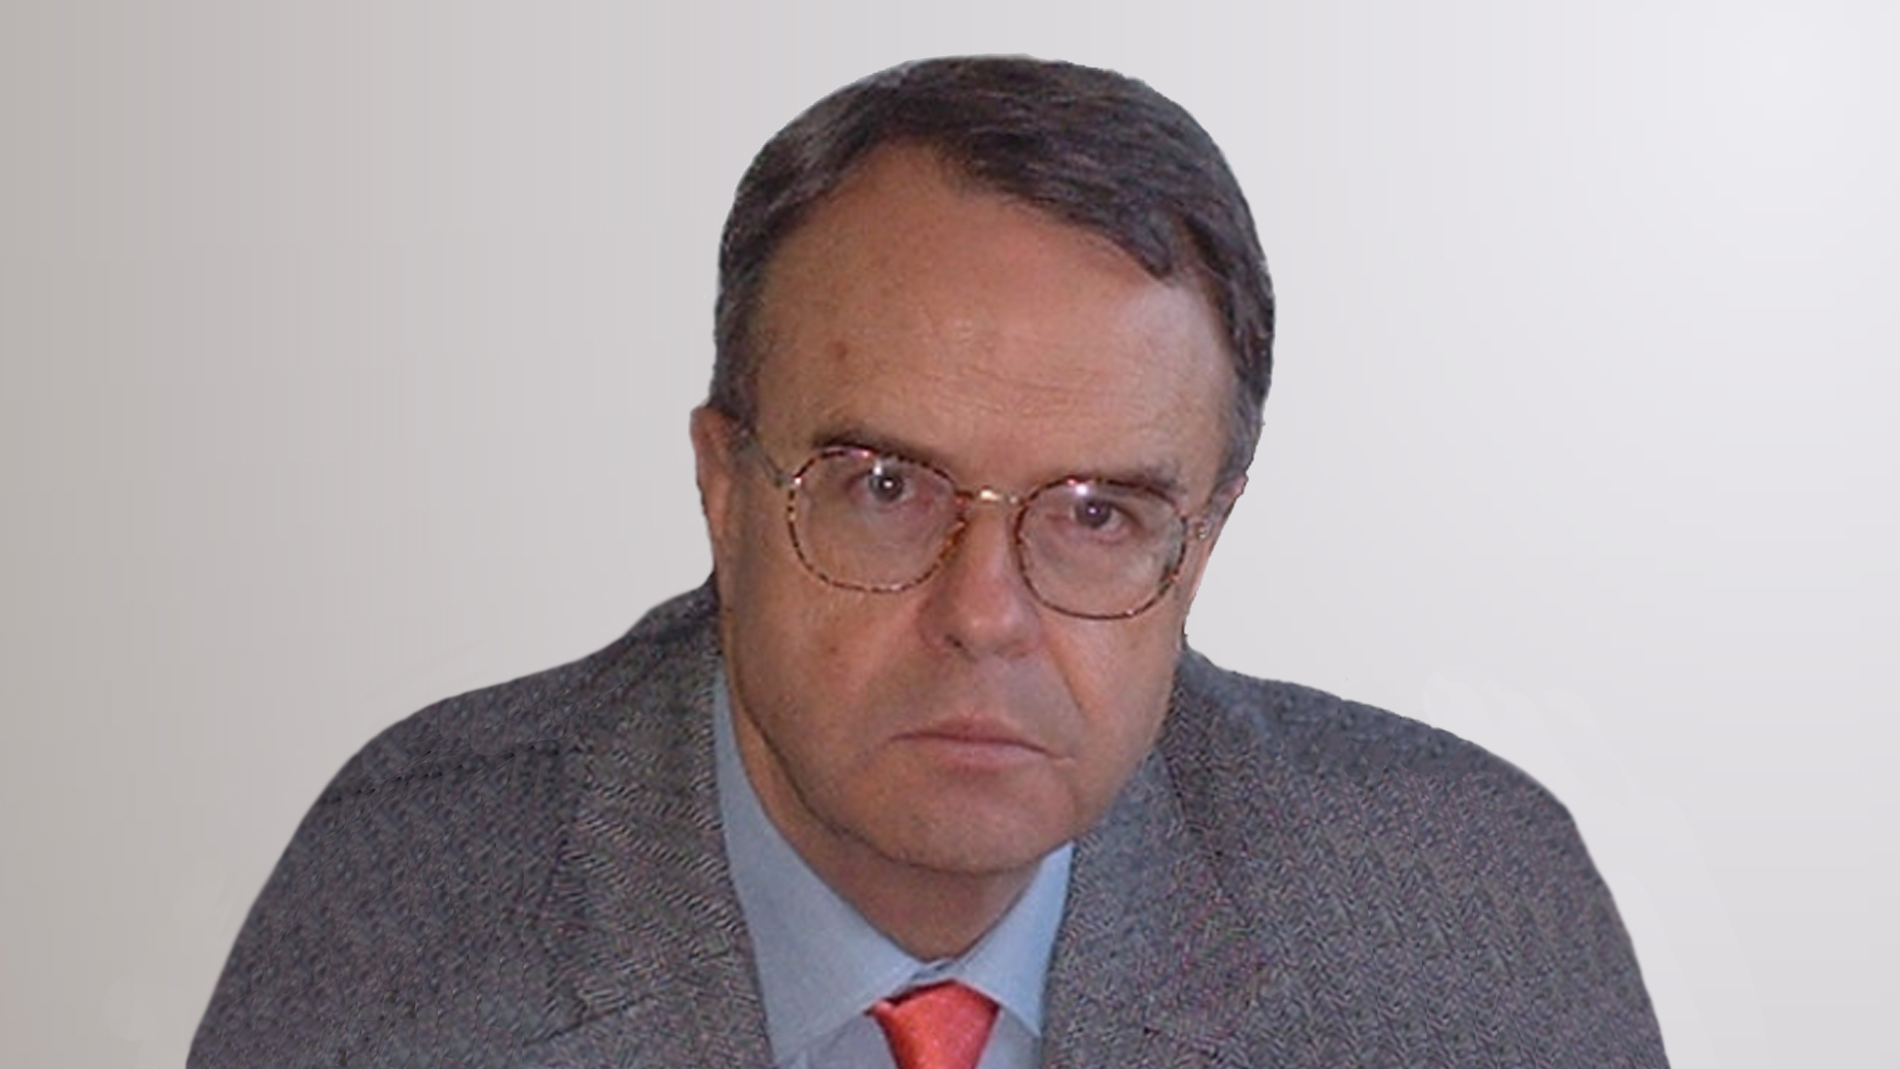 Prof. Dr. Enrique J. Dede, ETSE University of Valencia, Spain